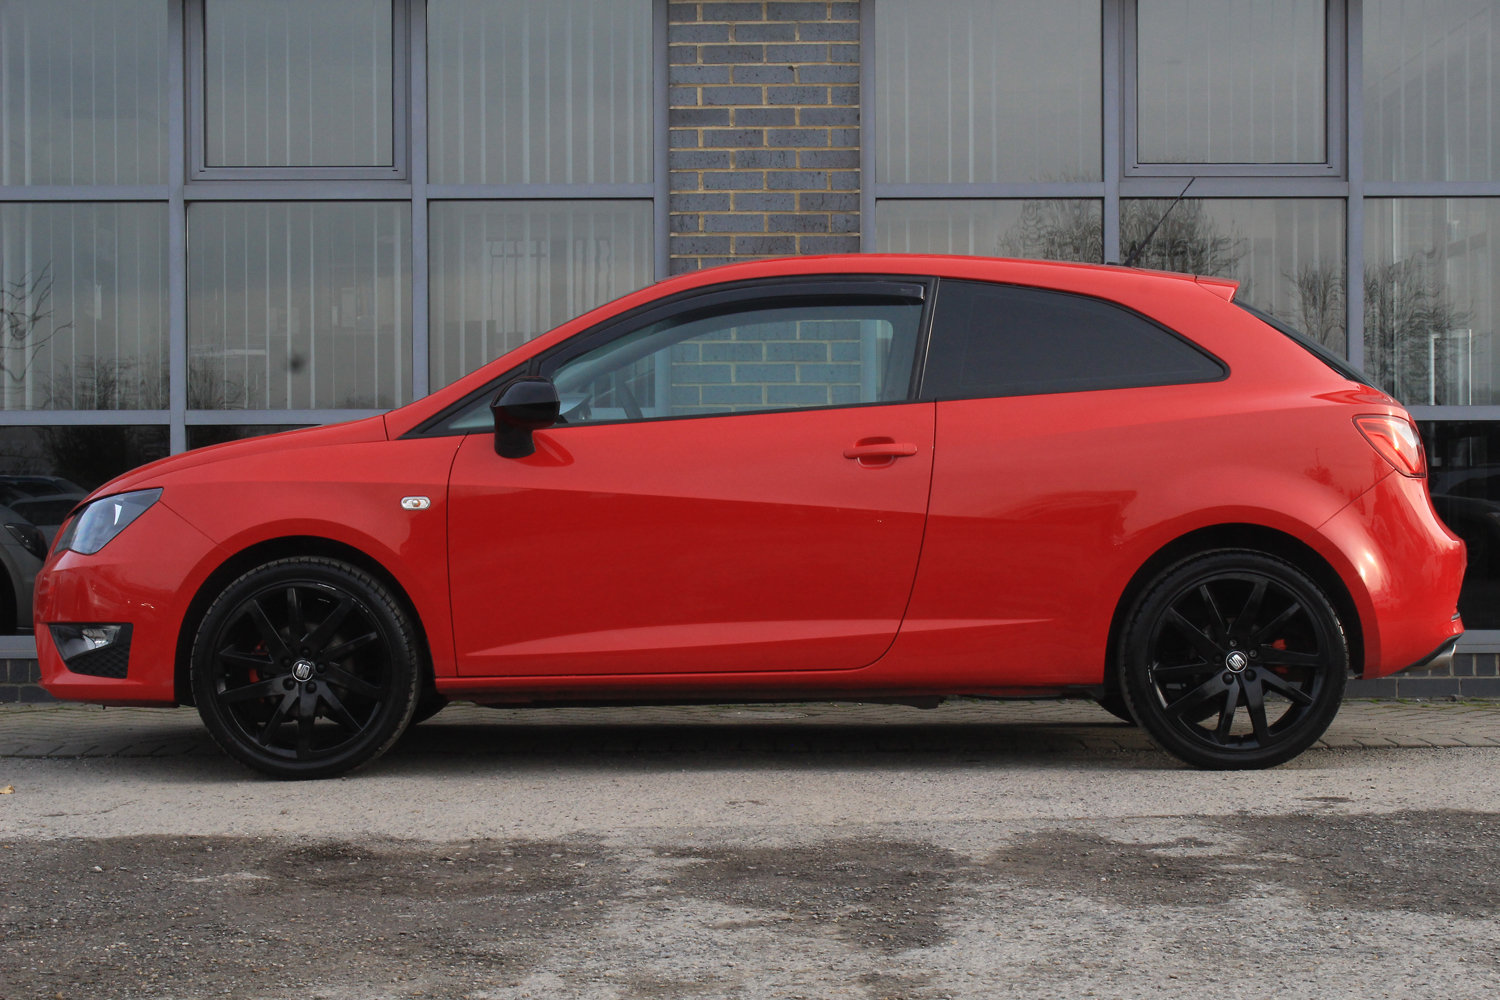 2015 15 SEAT IBIZA 1.2 TSI FR BLACK  For Sale (picture 2 of 6)